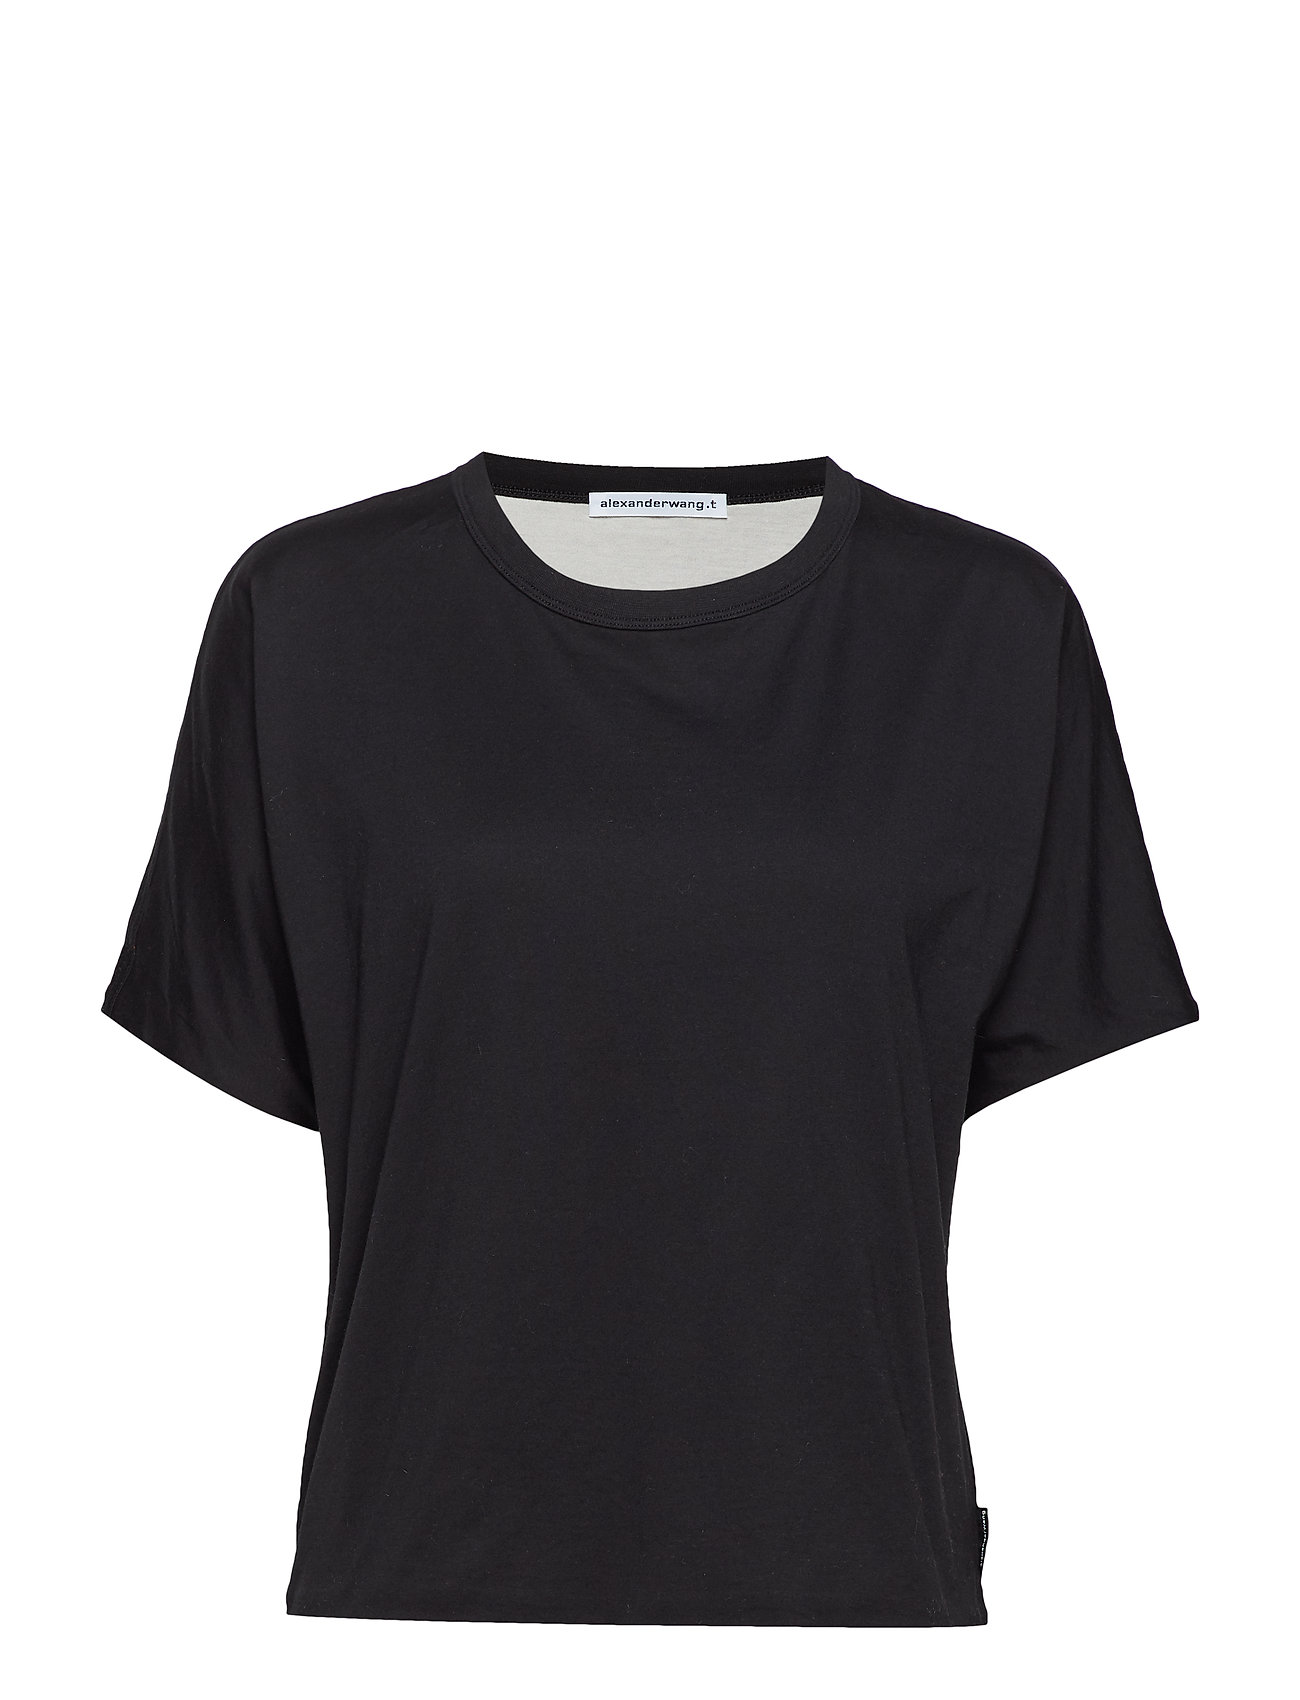 T by Alexander Wang SUPERFINE JERSEY S/S CREWNECK TOP - BLACK/PEARL